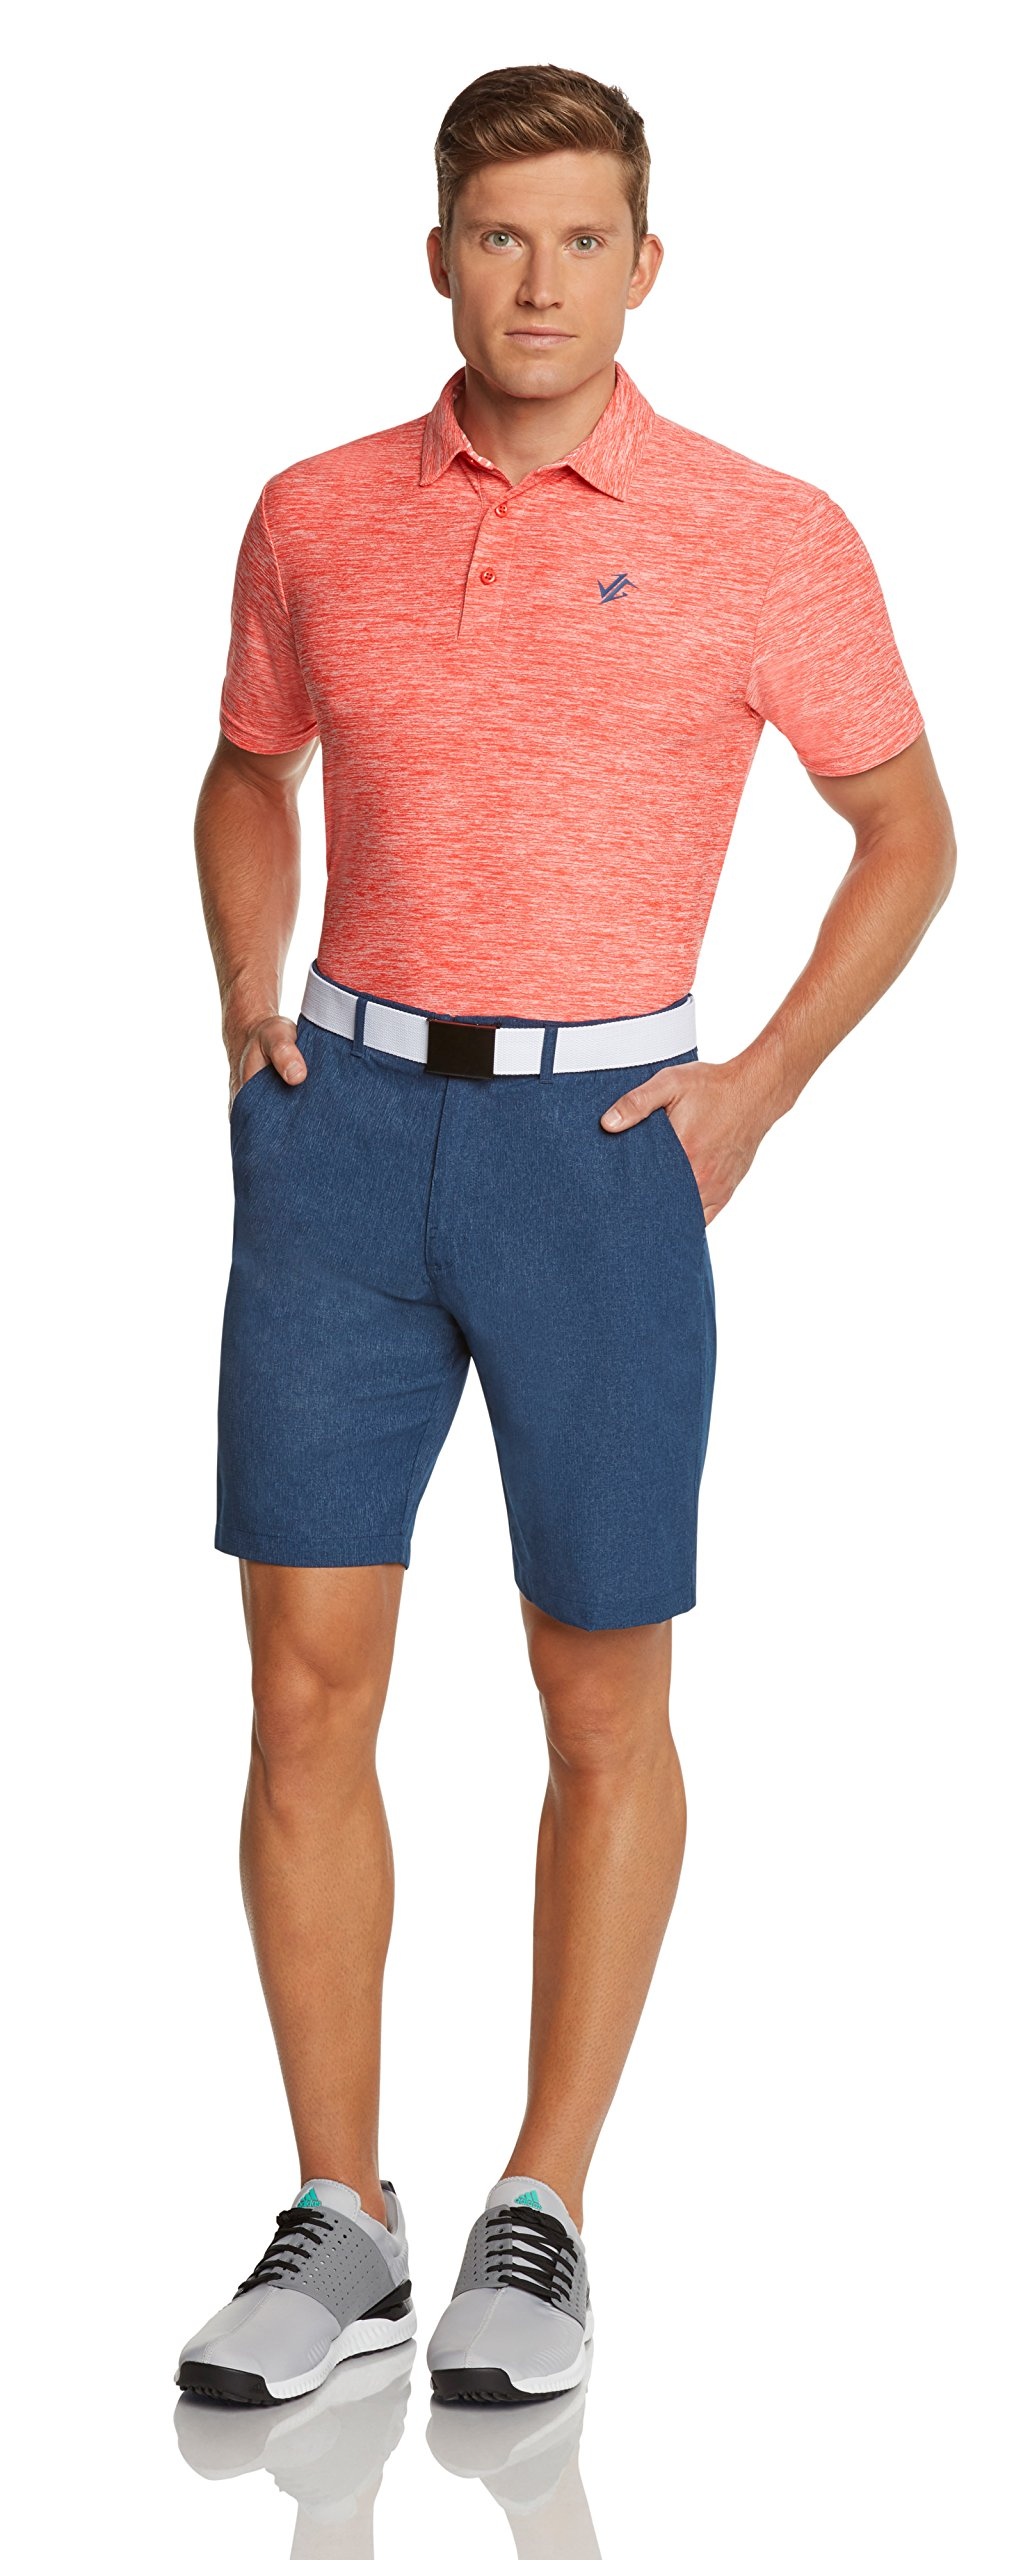 Jolt Gear Dry Fit Golf Shorts for Men – Casual Mens Shorts Moisture Wicking - Men's Chino Shorts with Elastic Waistband by Jolt Gear (Image #5)